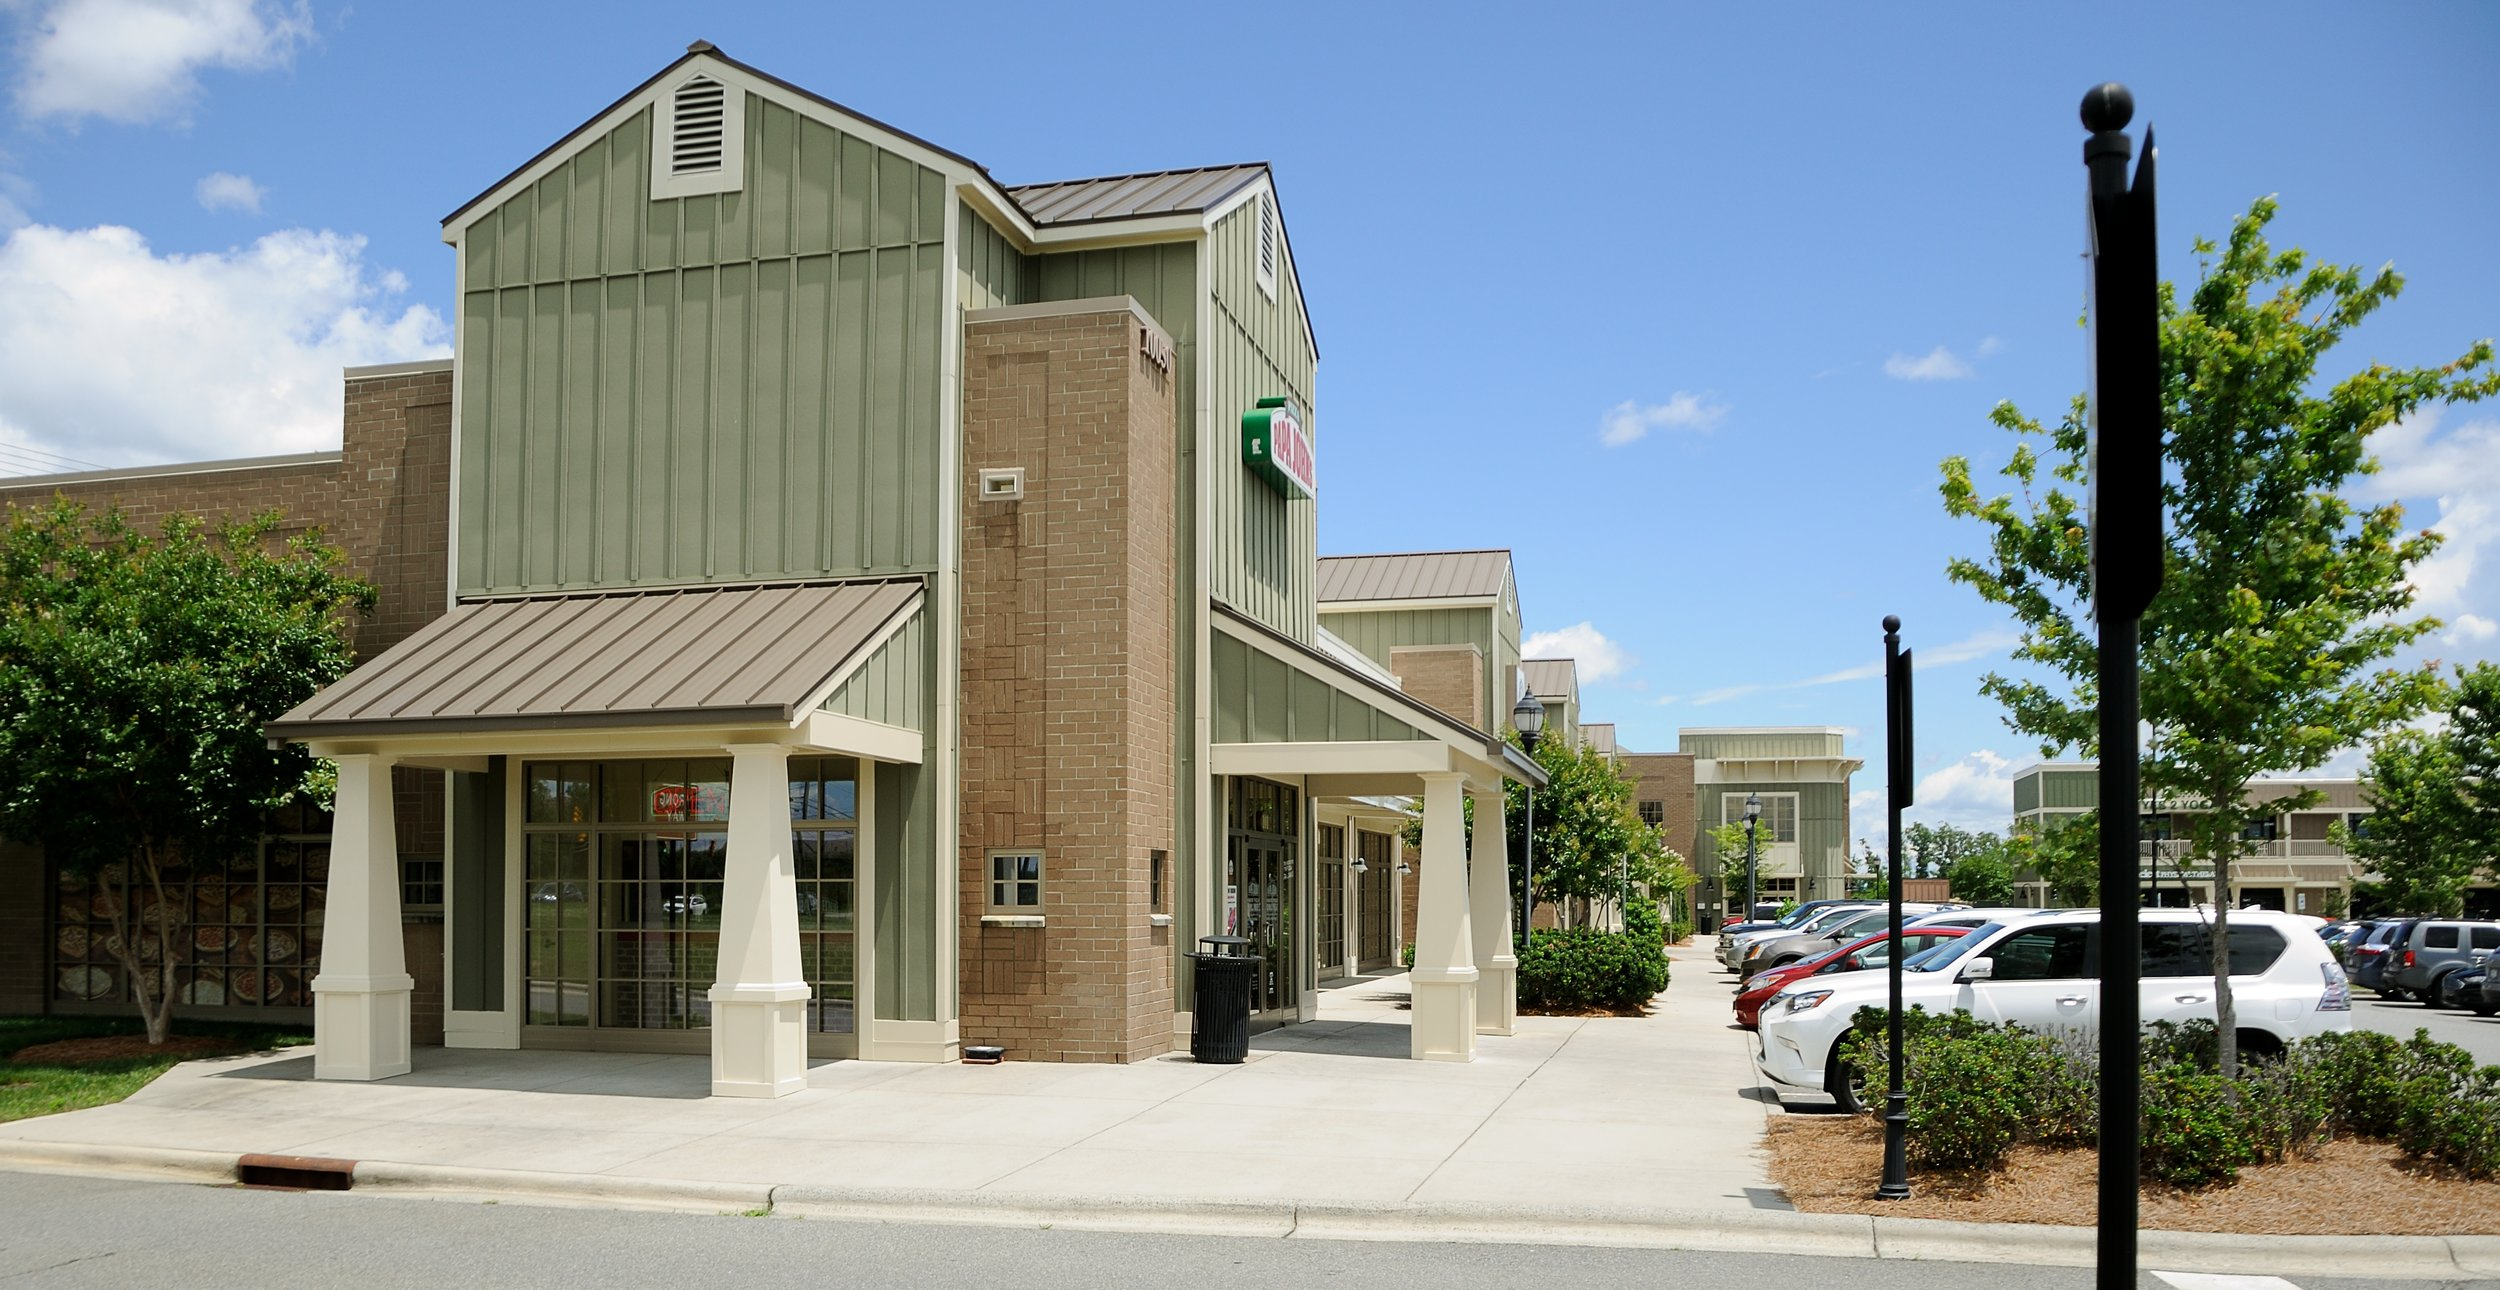 ADW-Office+Mixed-Use-Retail-Restaurant-Edison-Square-Concord-NC-2.jpg